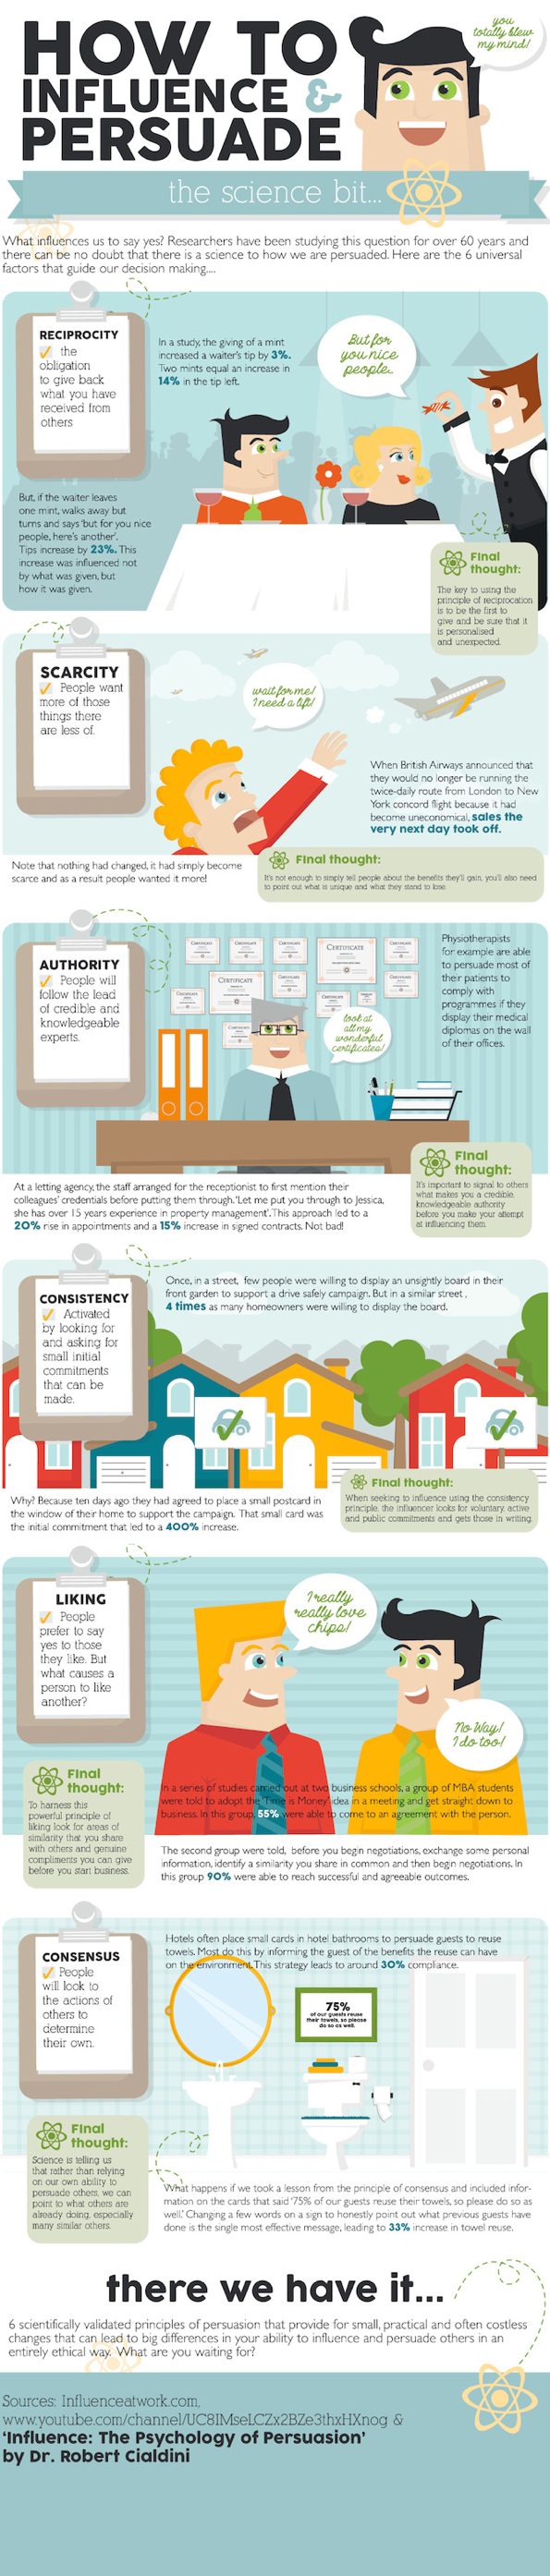 Influence and Persuasion 6 Ways to Sell More Infographic image